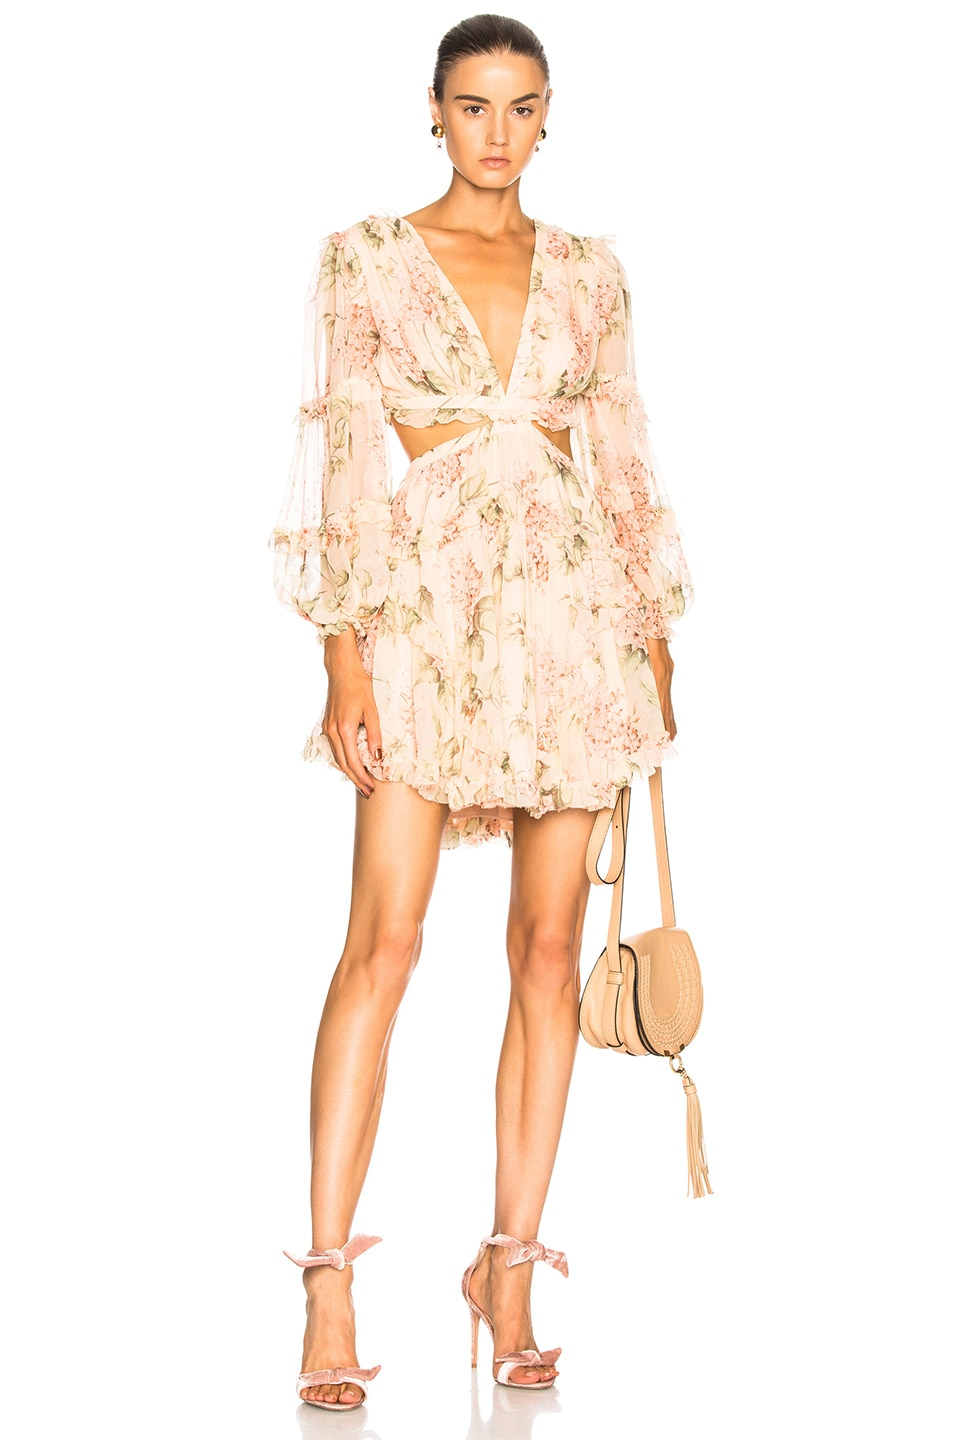 f1522889824fd Image 1 of Zimmermann Prima Floating Cut Out Dress in Peach Floral